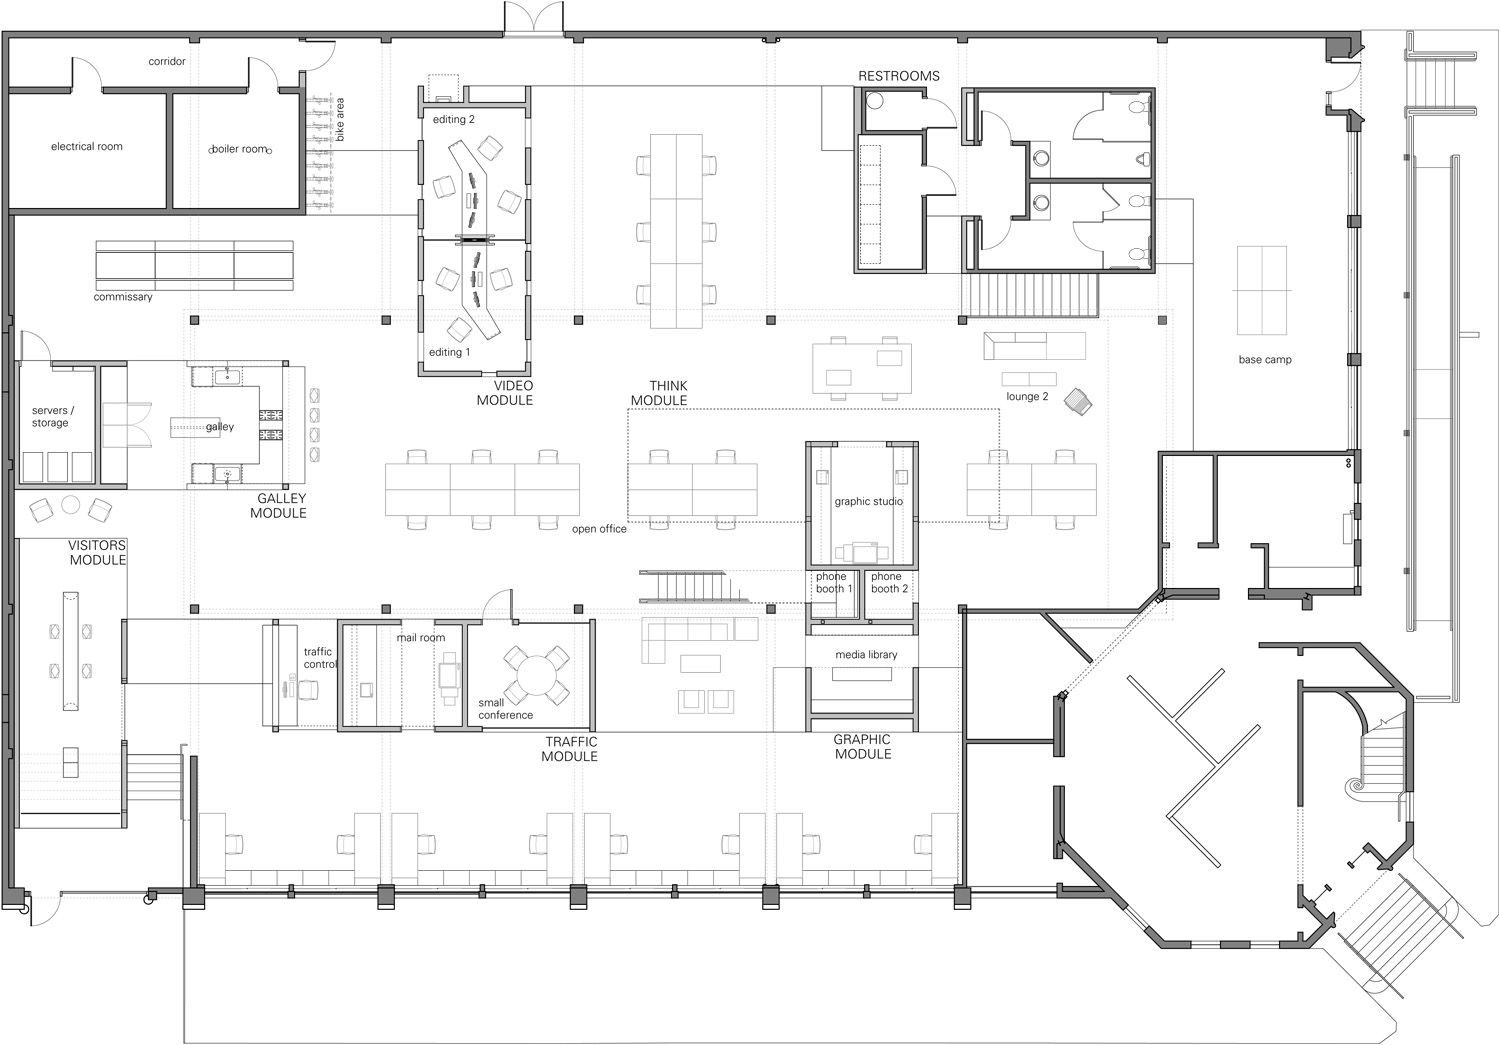 North skylab architecture office floor plan office for Office design floor plan